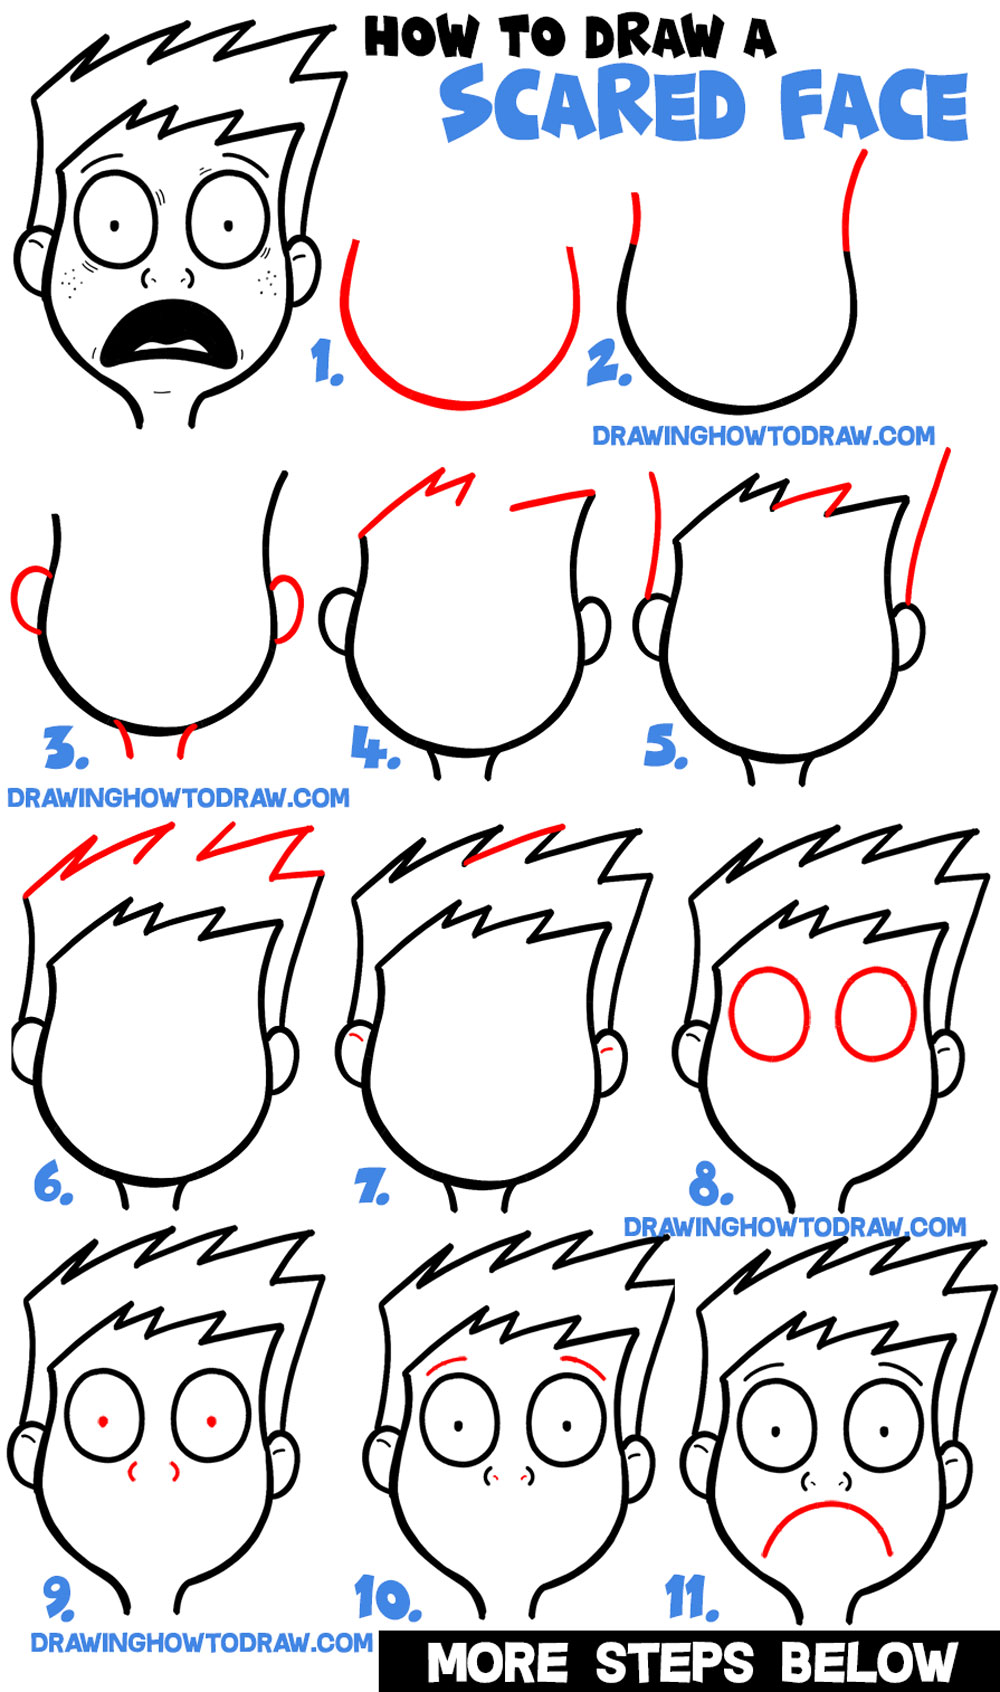 Learn How to Draw Cartoon Facial Exressions : Scared, Petrified, Afraid, Terrified, Panic (Easy Step by Step Drawing Tutorial)